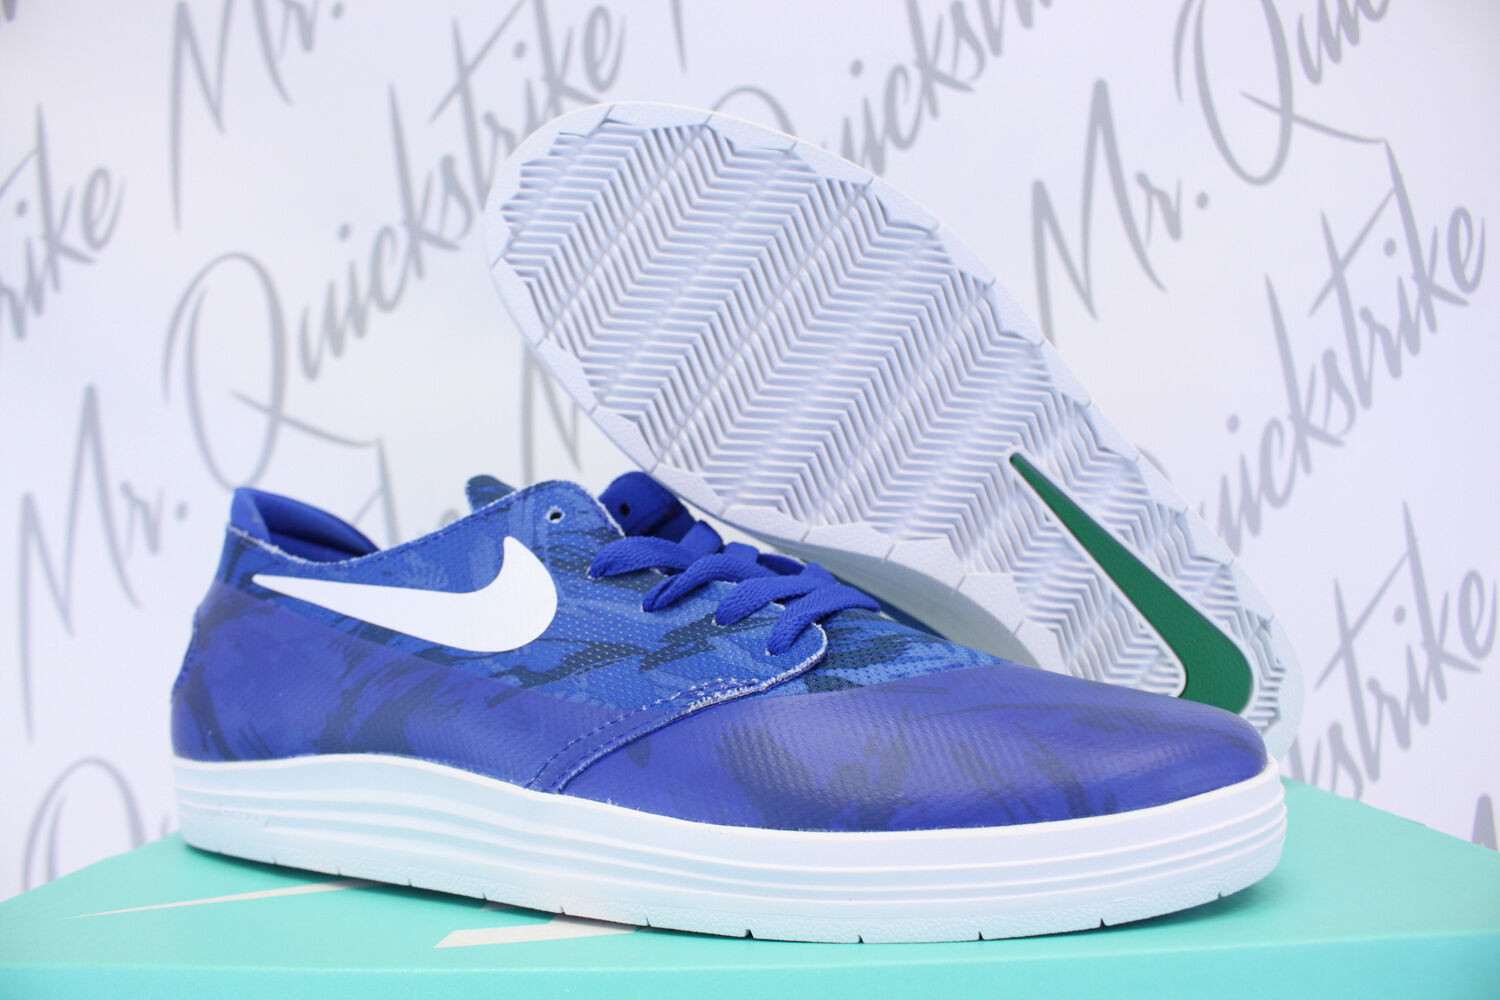 NIKE LUNAR ONESHOT SB WC SZ 8 GAME ROYAL blueE WHITE ONE SHOT 645019 401